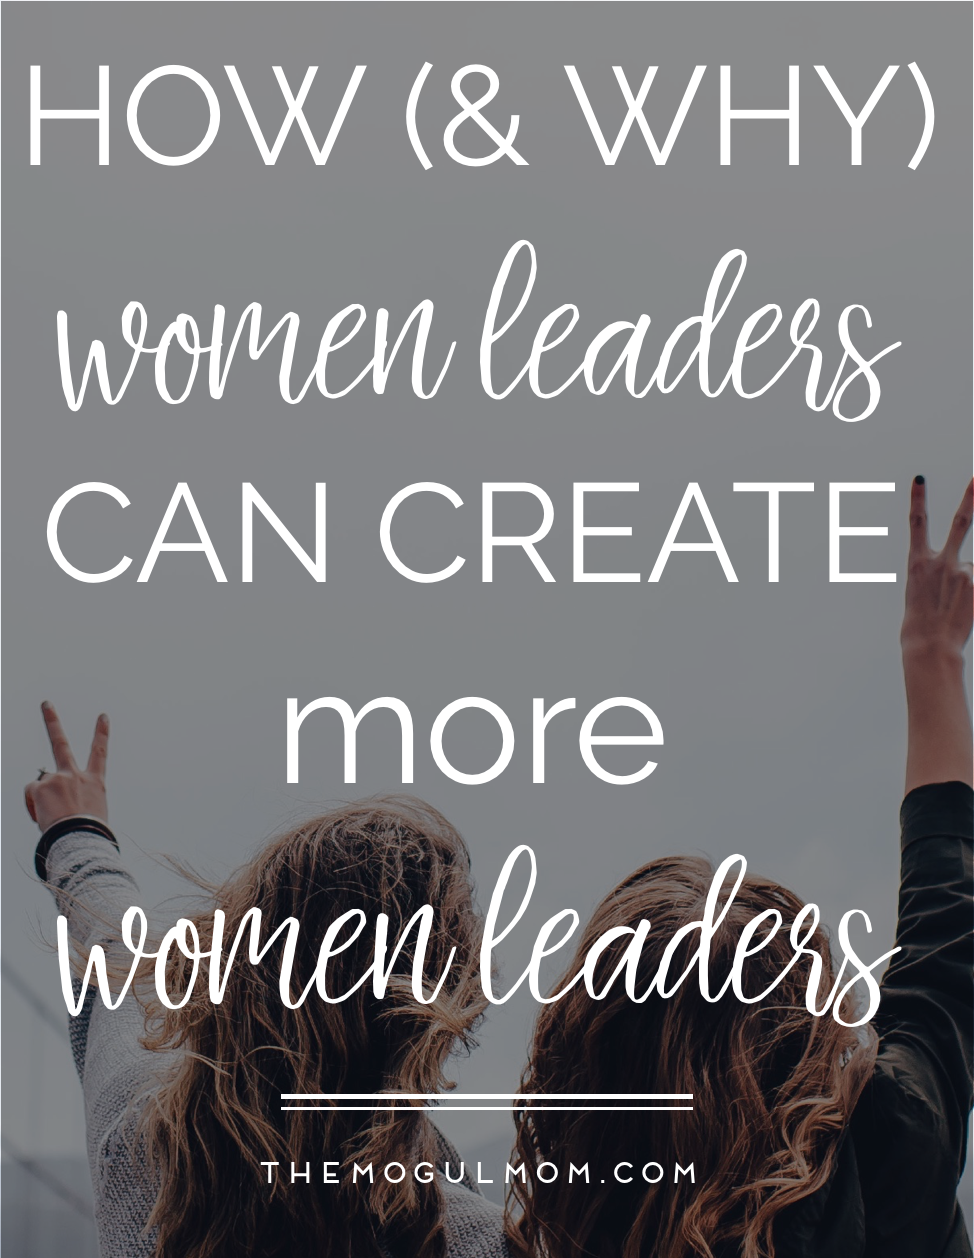 How Women Leaders Can Help Create More Women Leaders